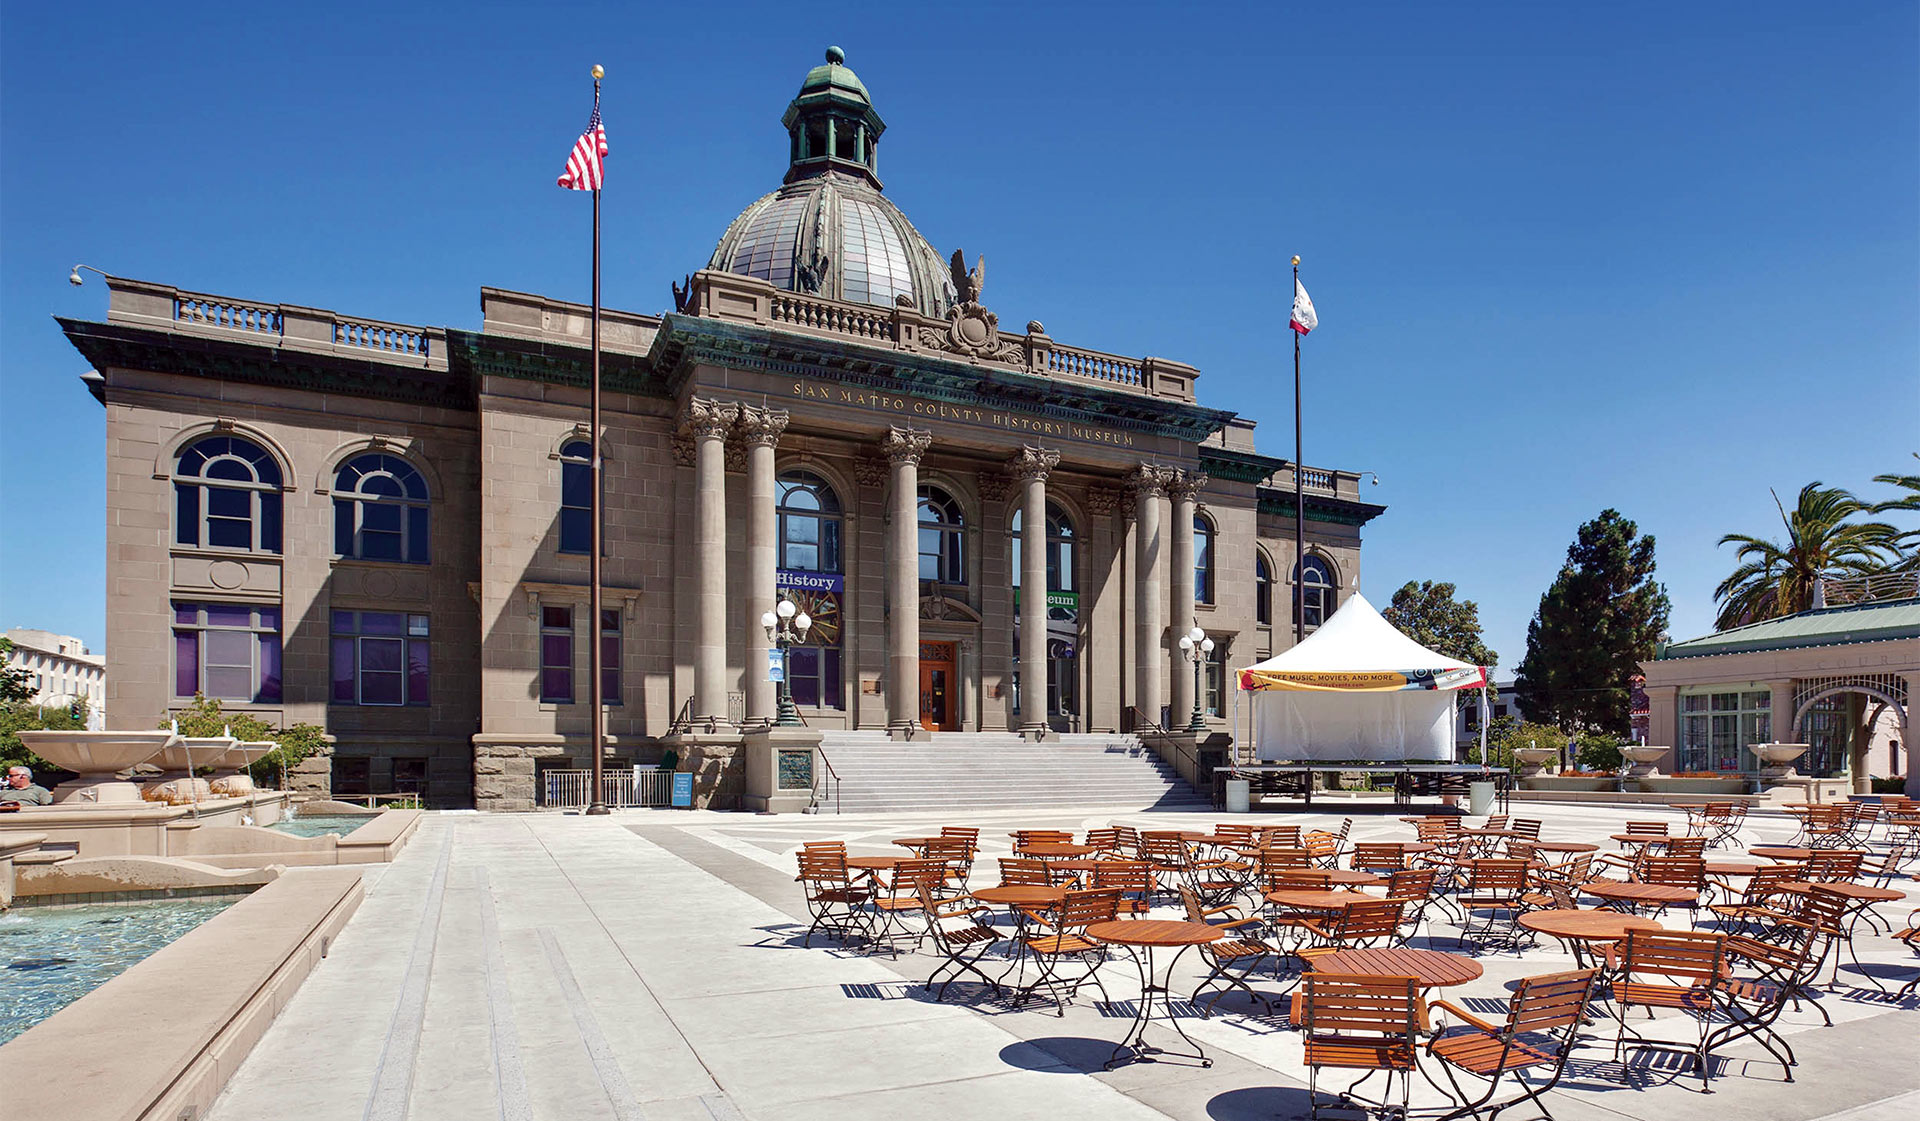 707 Leahy - Redwood City, CA - University